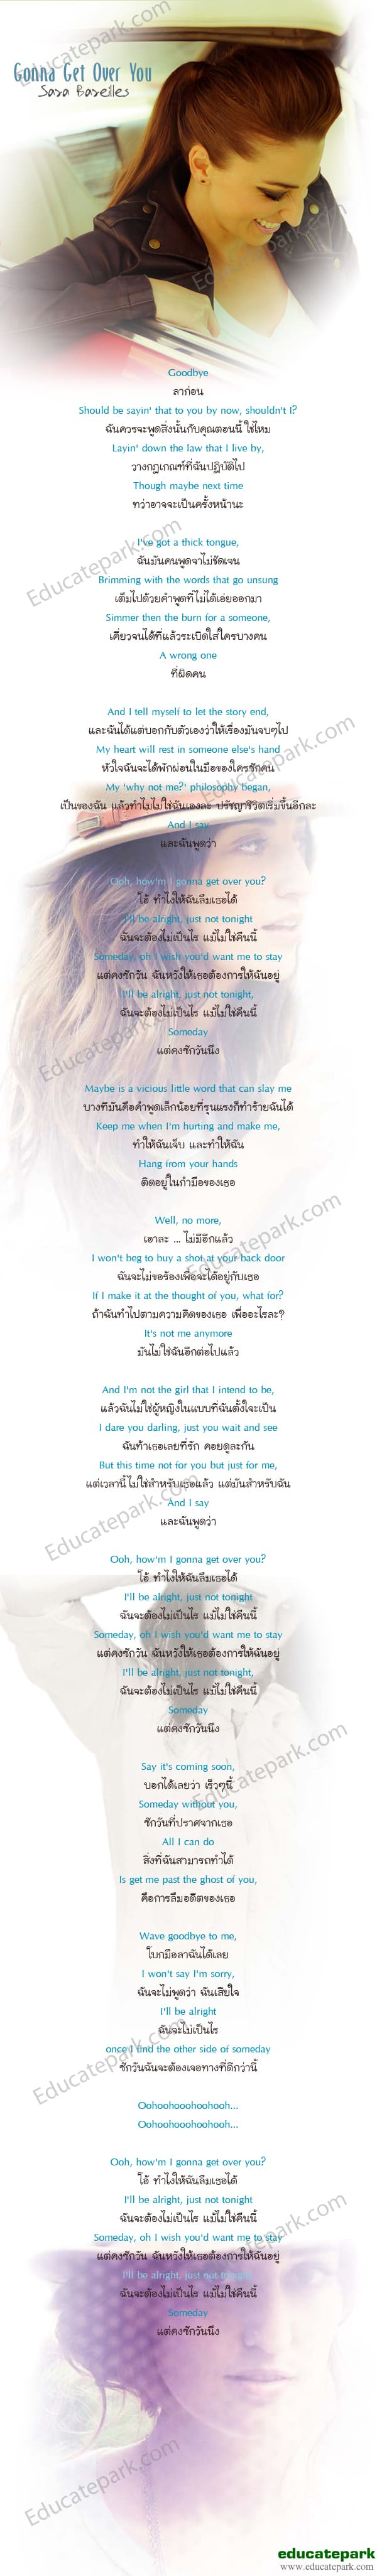 แปลเพลง Gonna Get Over You - Sara Bareilles